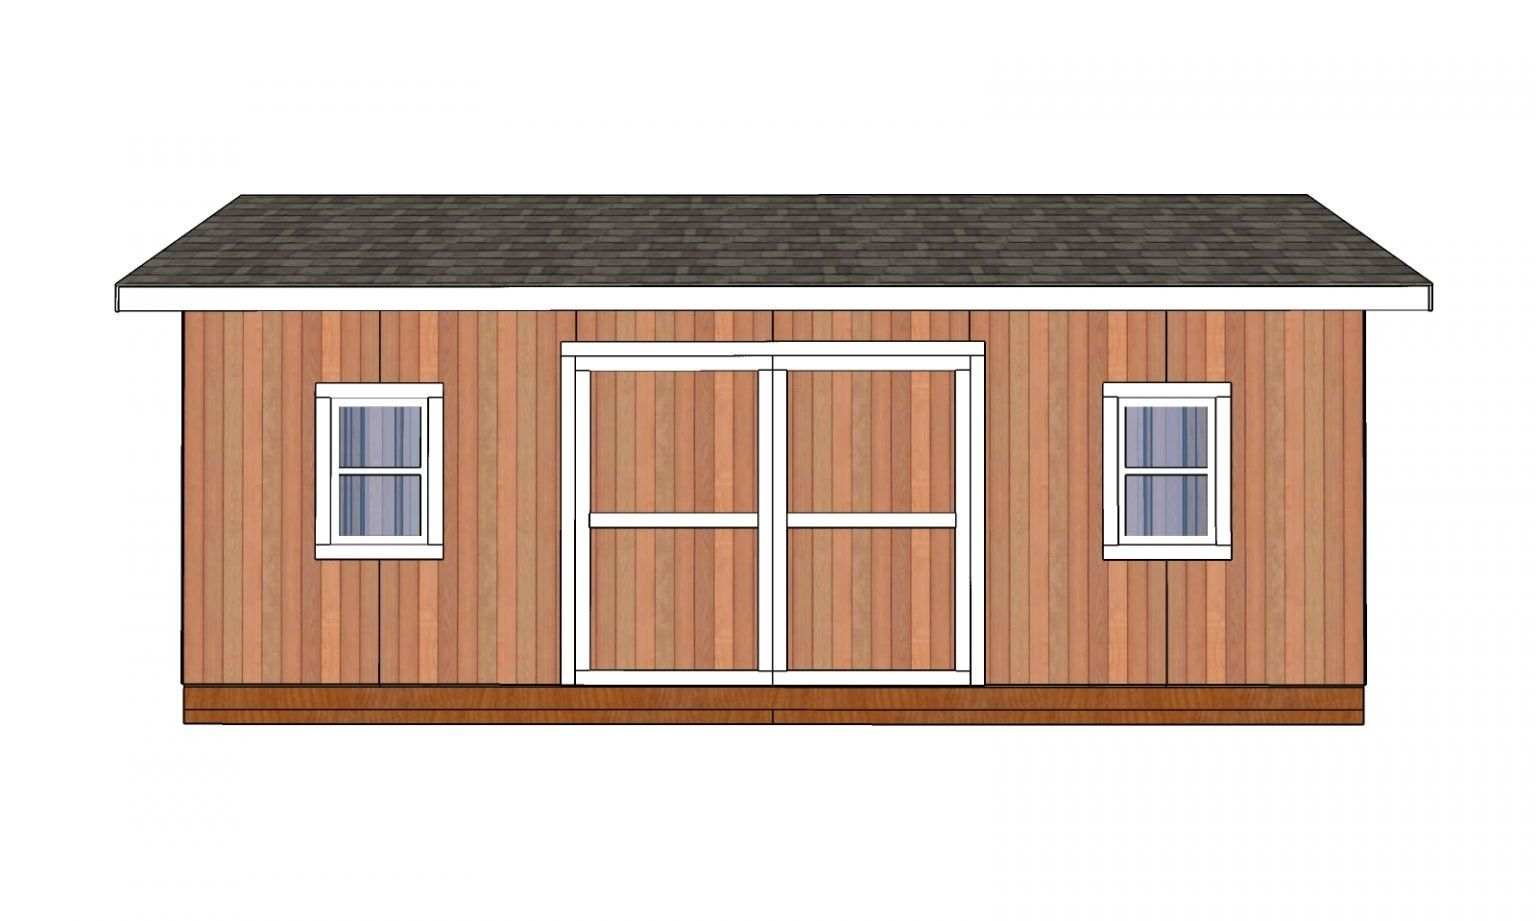 12x24 Shed Plans Free Diy Plans Howtospecialist How To Build Step By Step Diy Plans In 2020 Shed Plans 12x24 Shed Shed